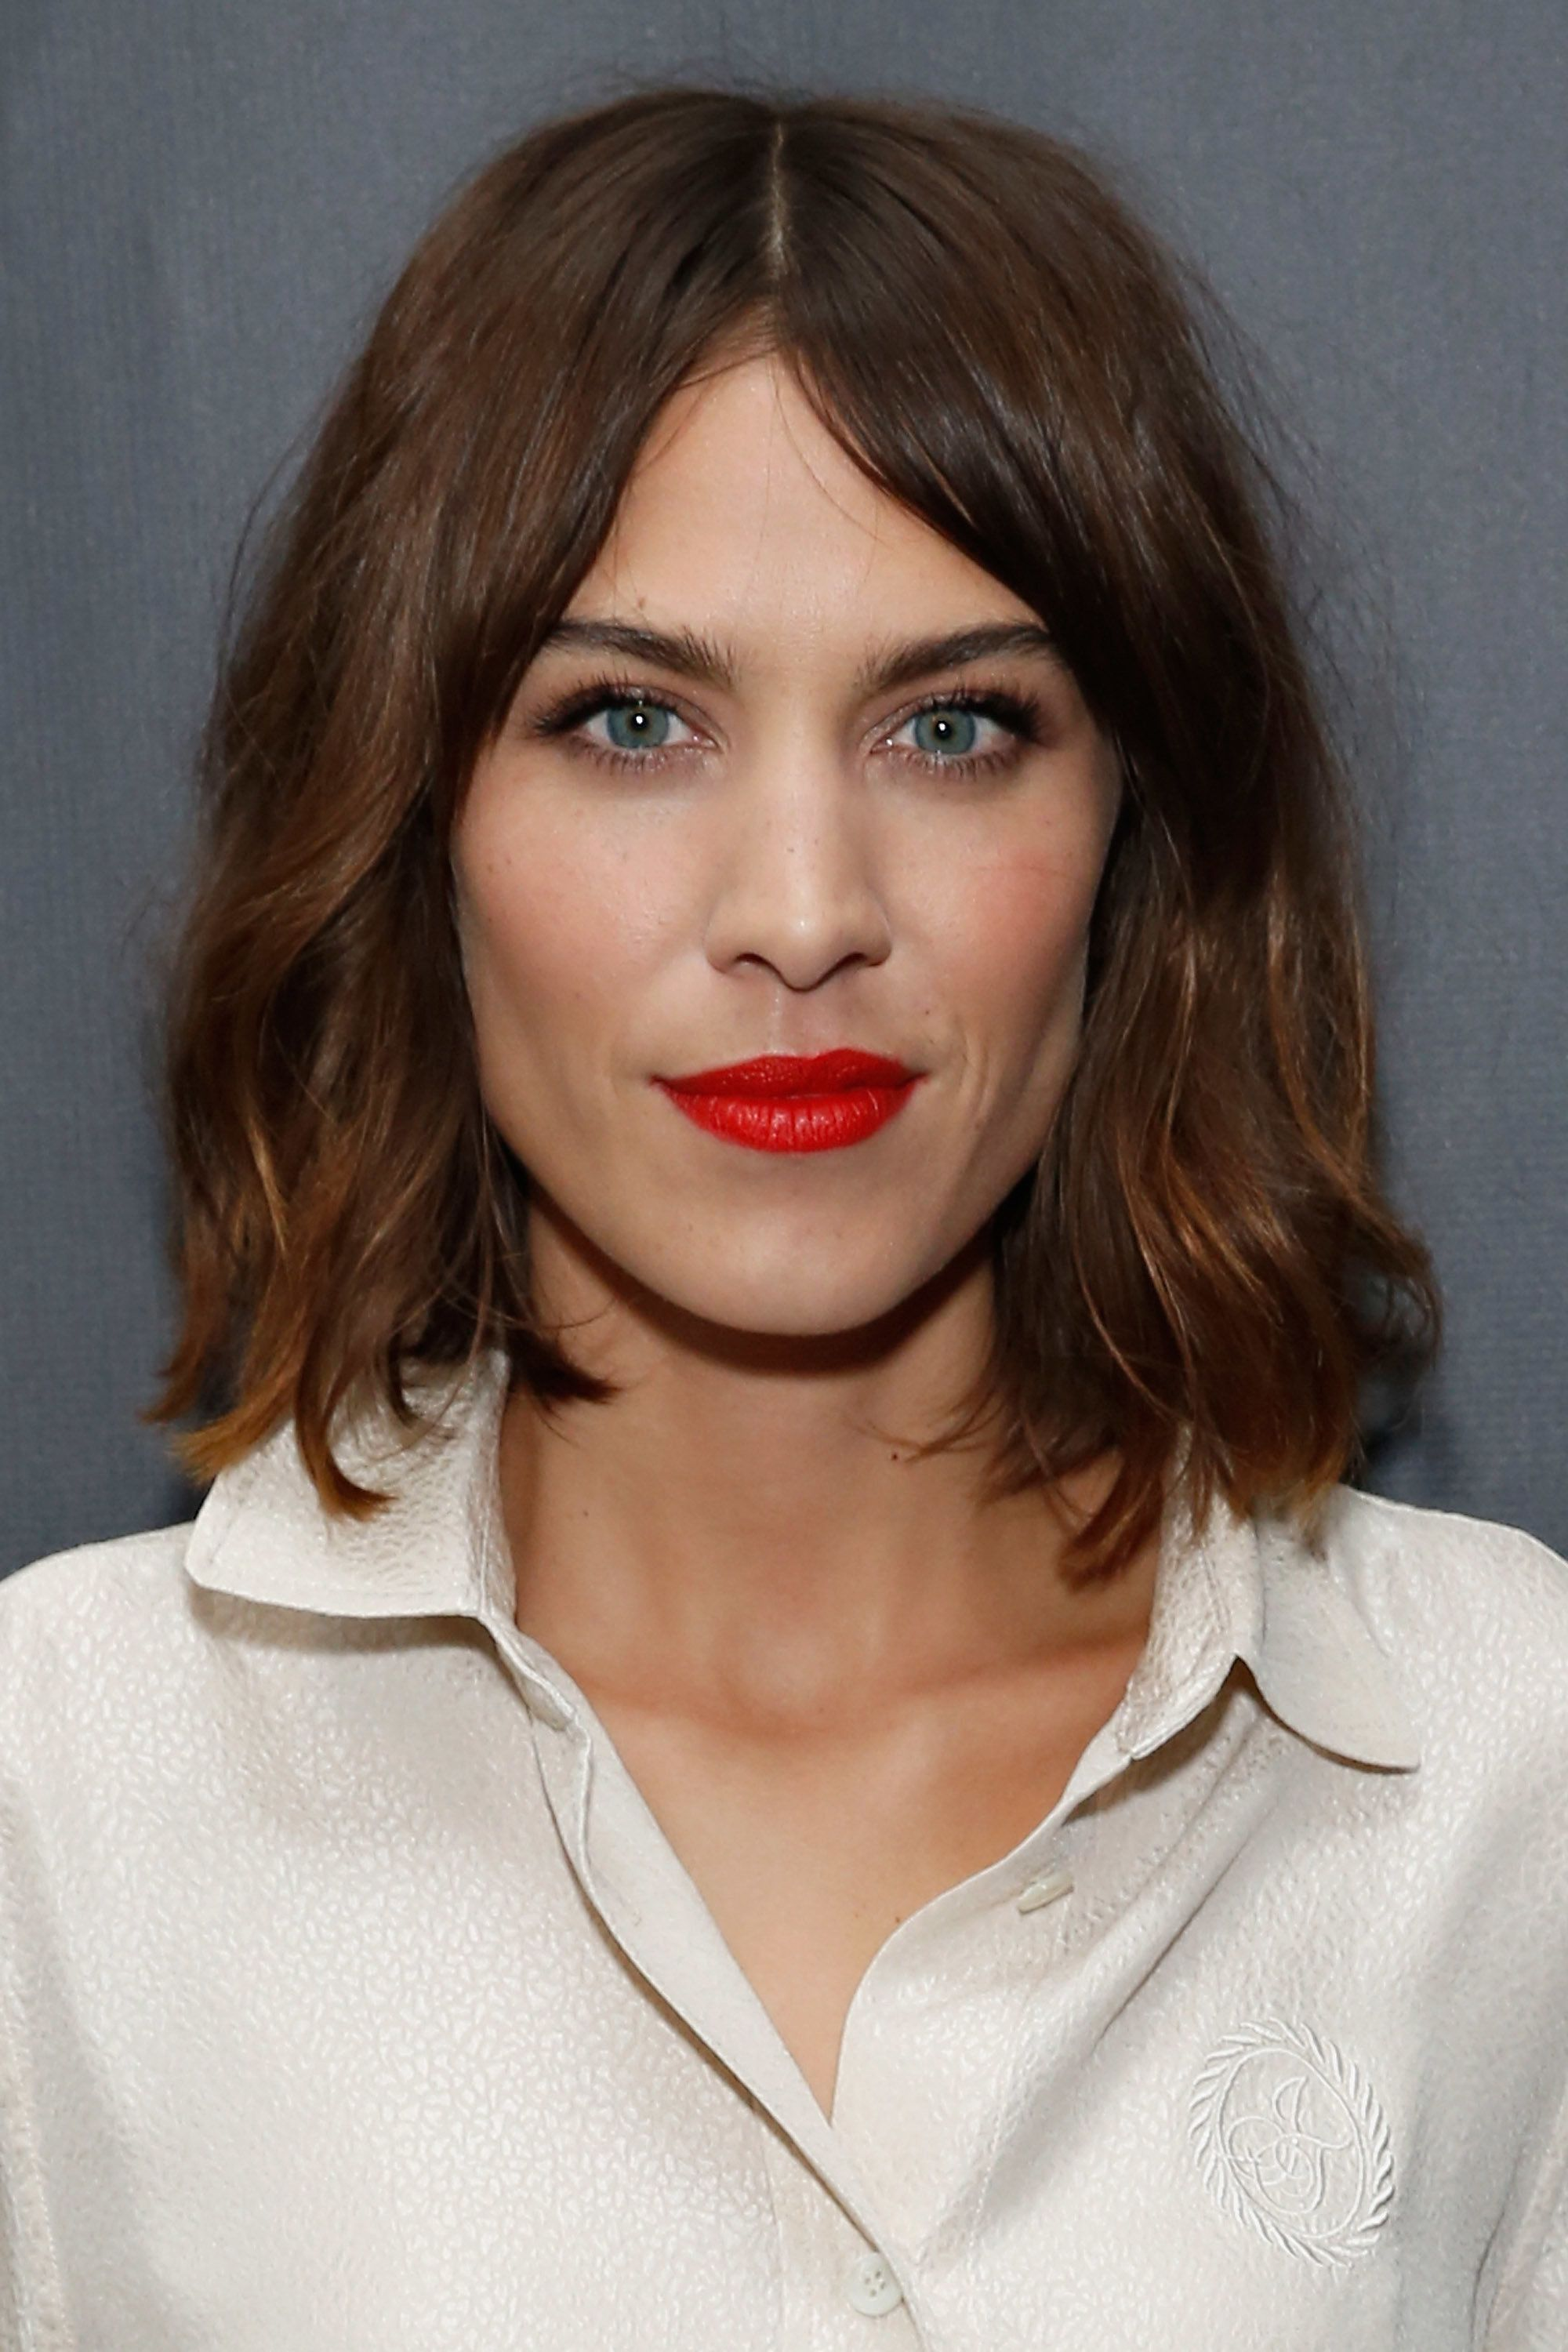 Alexa Chung for AG New York Launch Party in New York City.